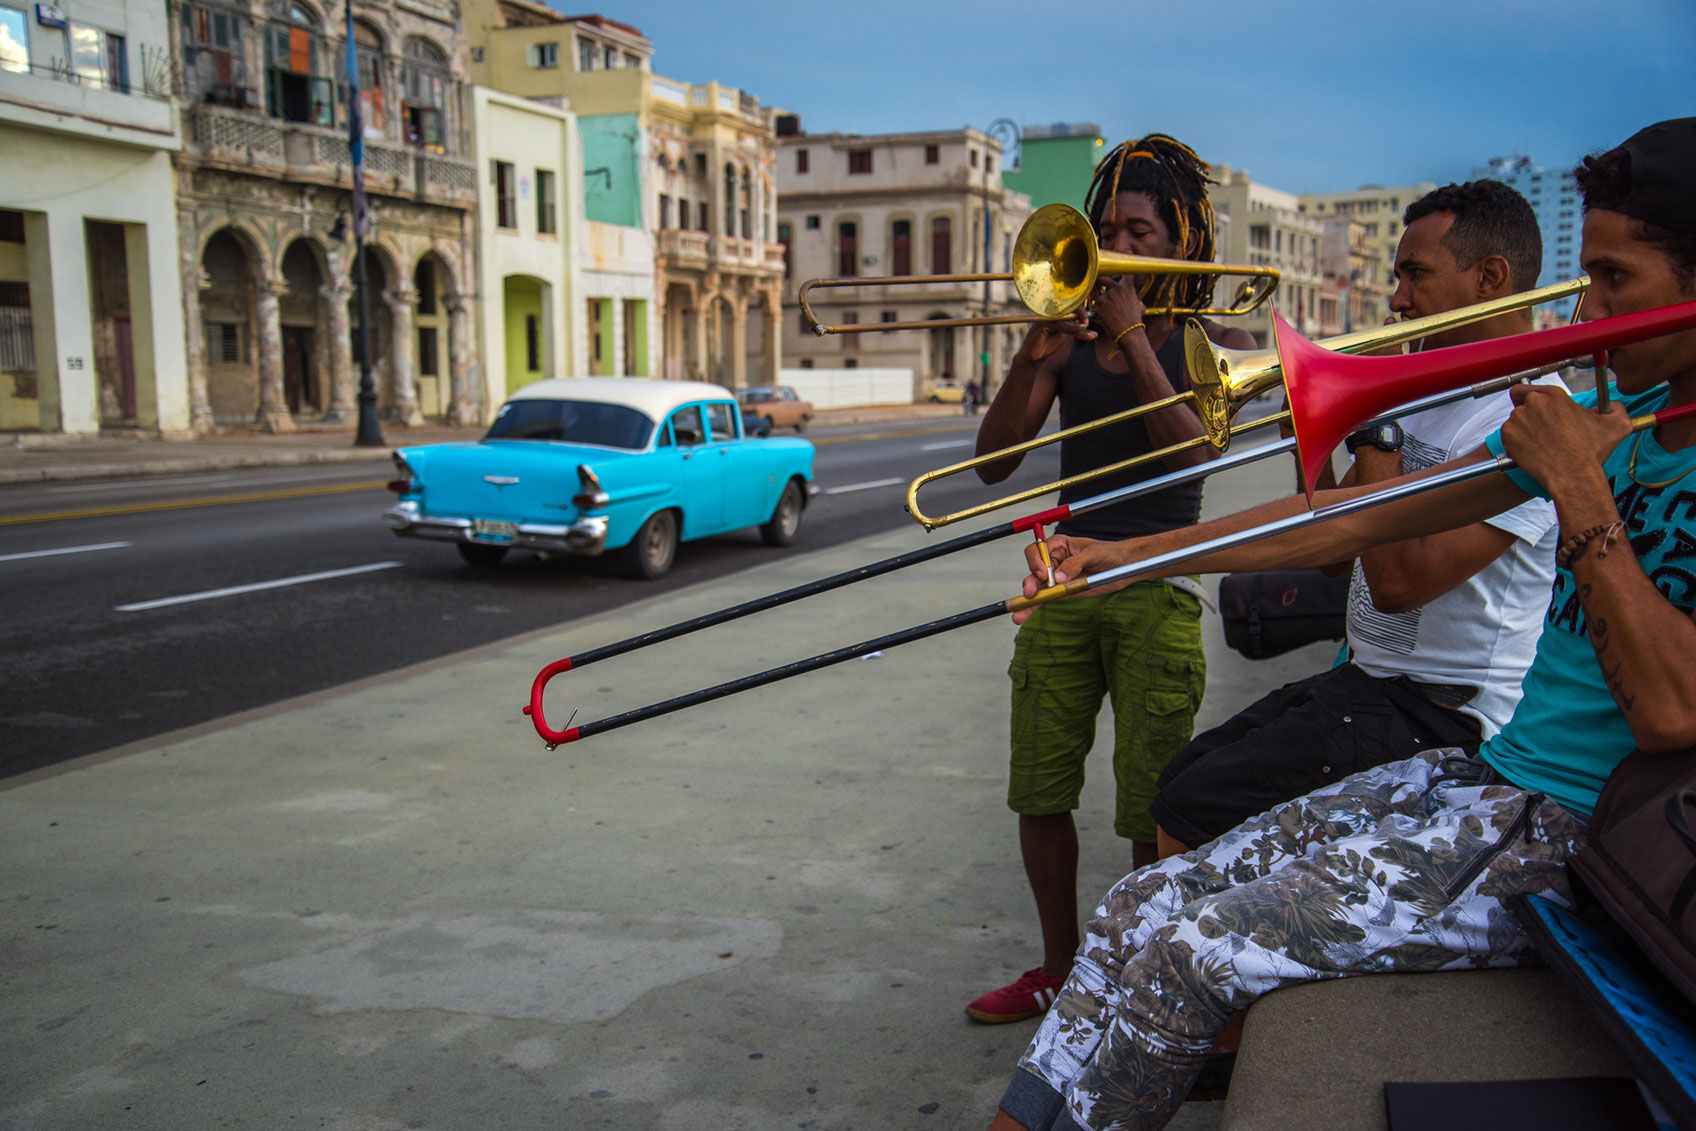 No open-air museum is as exciting as the Malecón promenade. During the day, the fishermen are replaced by musicians and prostitutes at night./